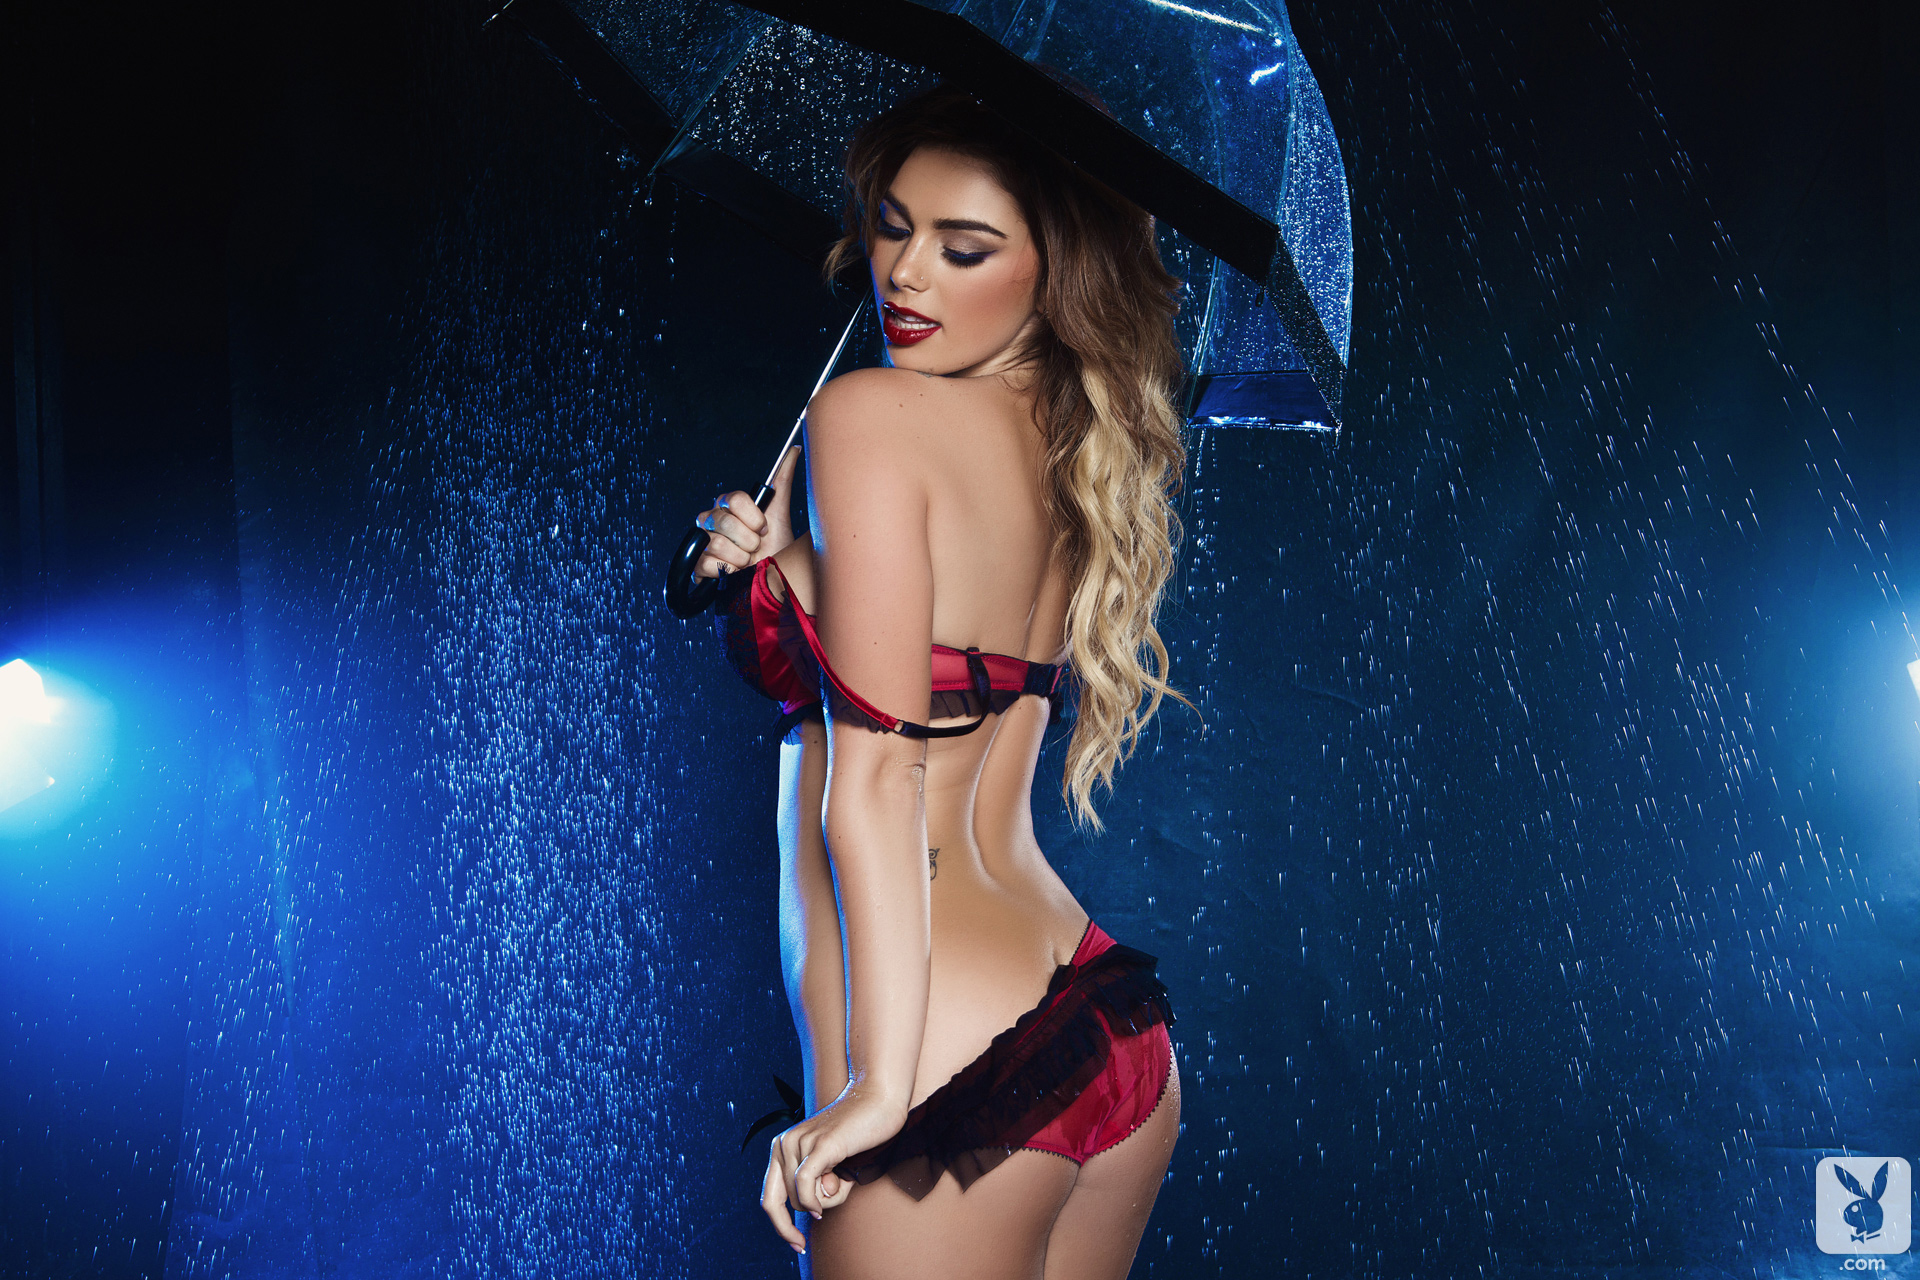 anika-shay-umbrella-rain-nude-playboy-04